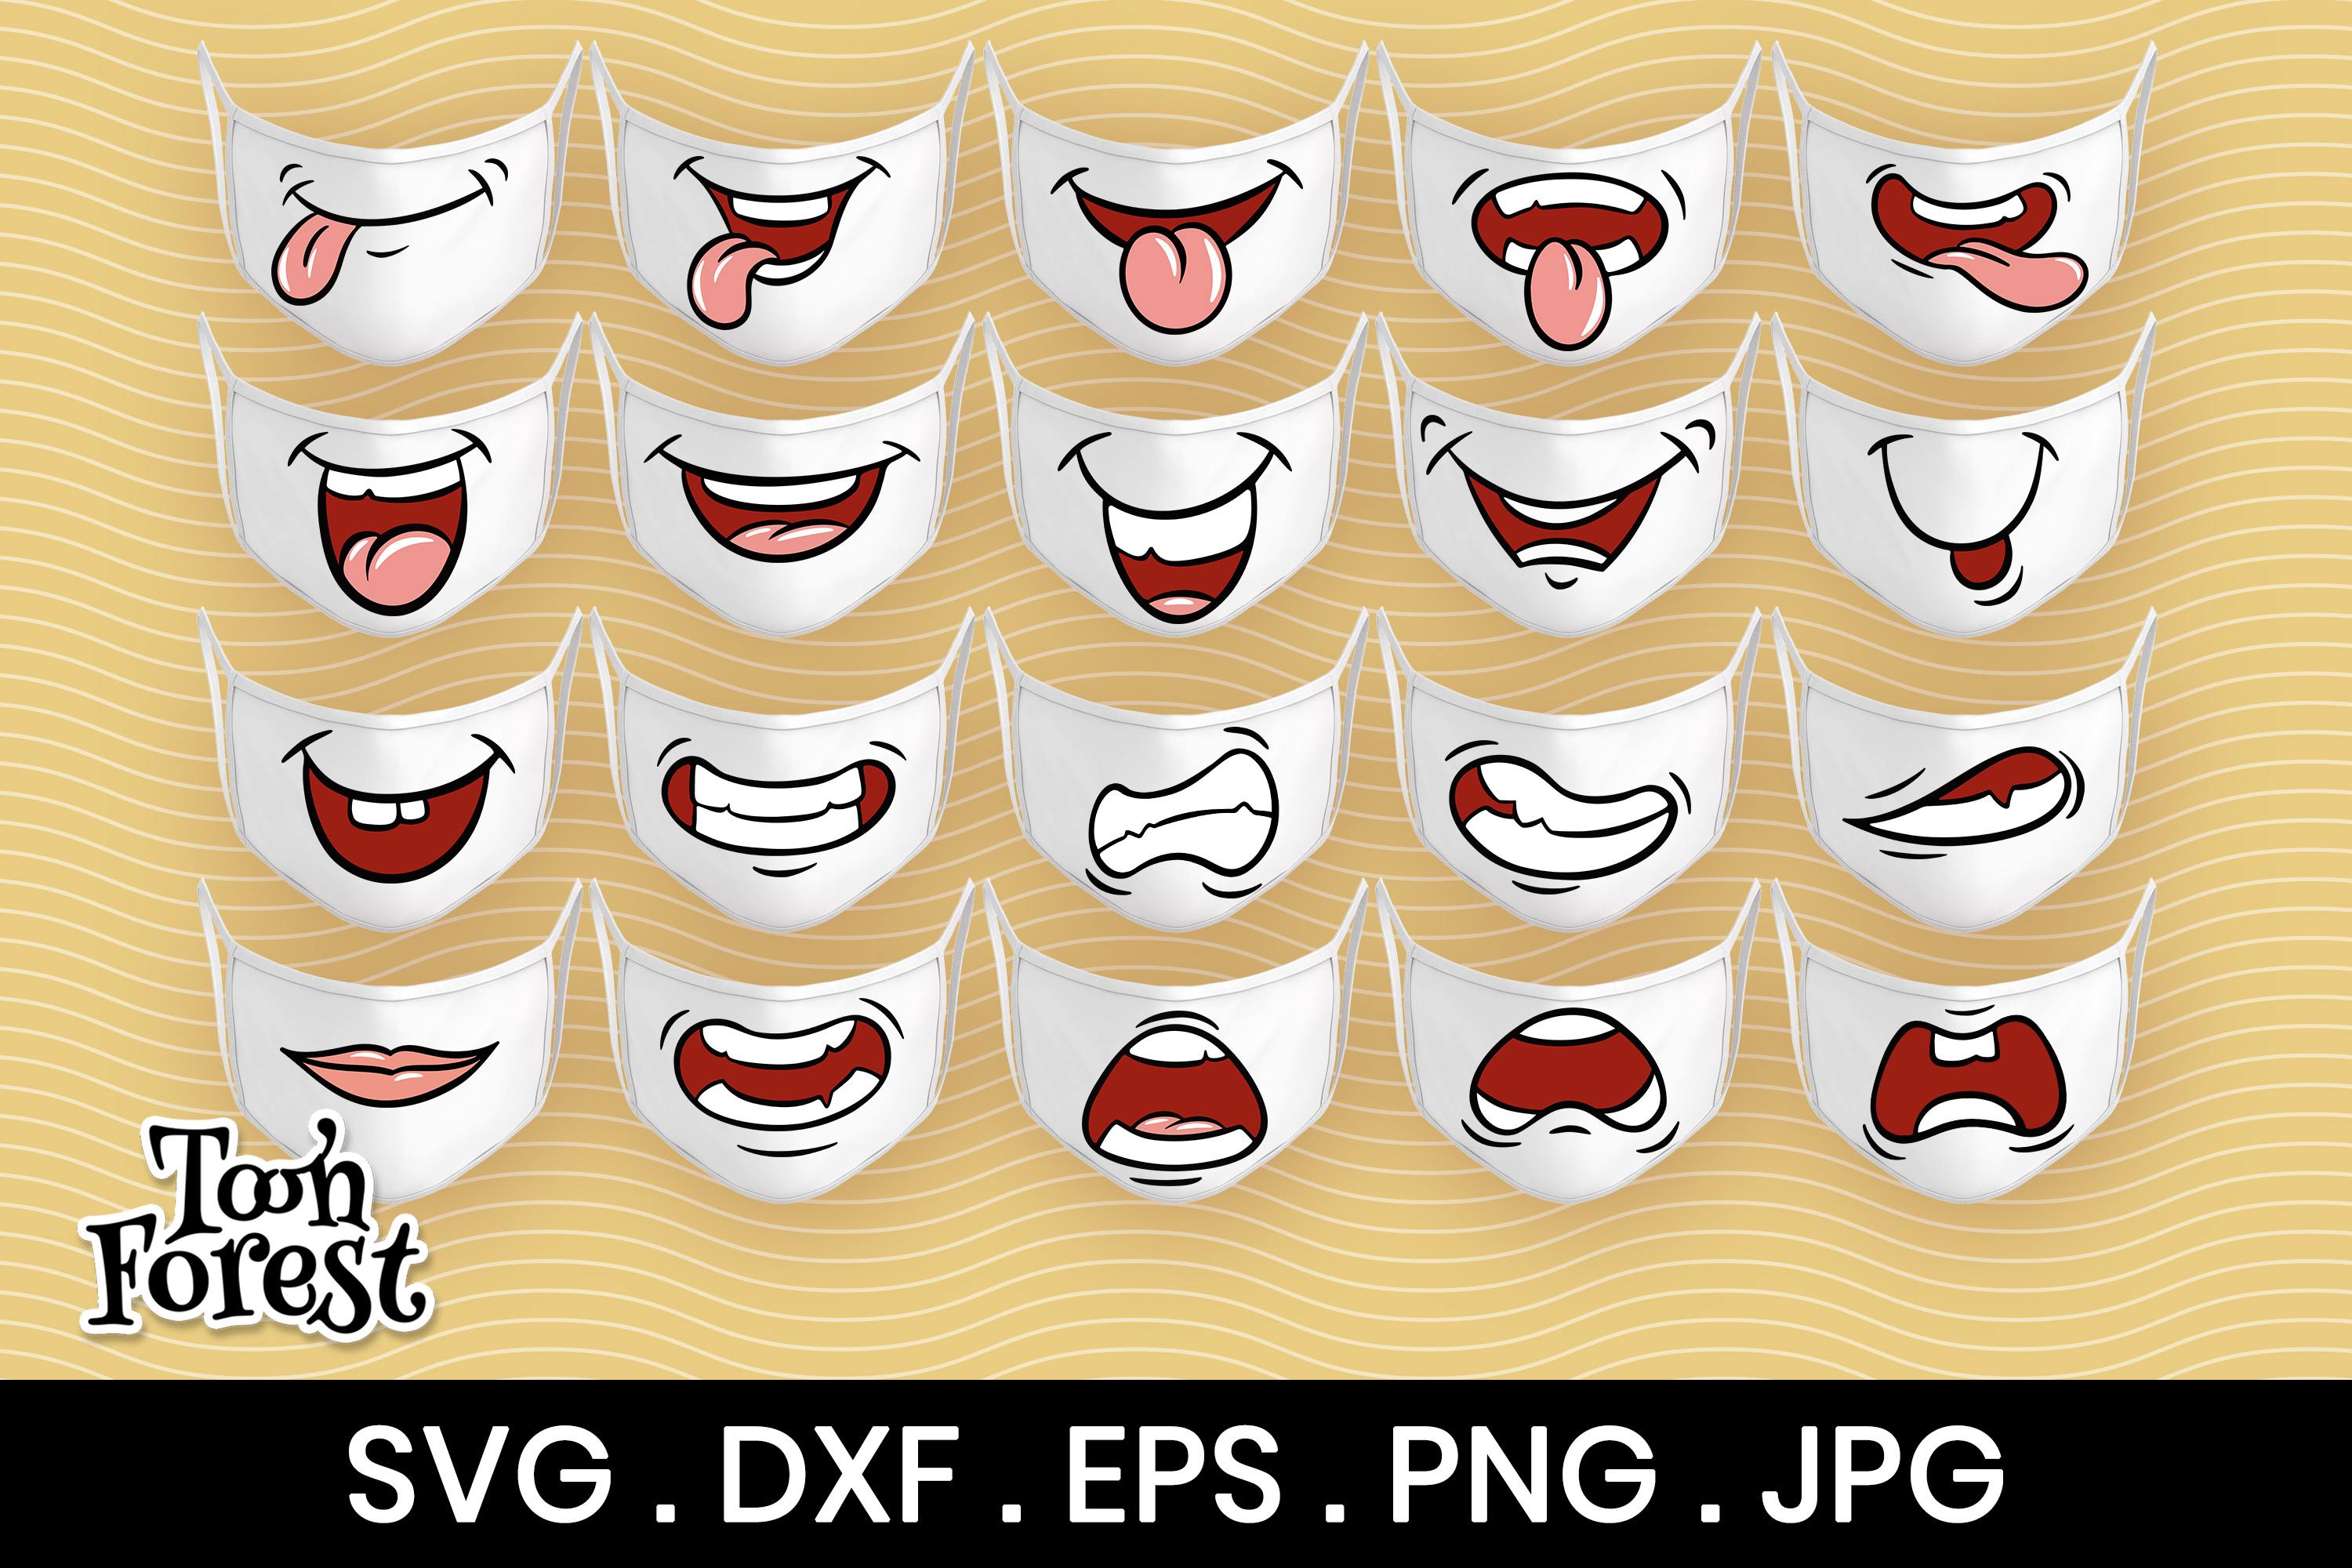 20 Funny Mouths Cut Files For Face Mask Graphic By Toon Forest Creative Fabrica